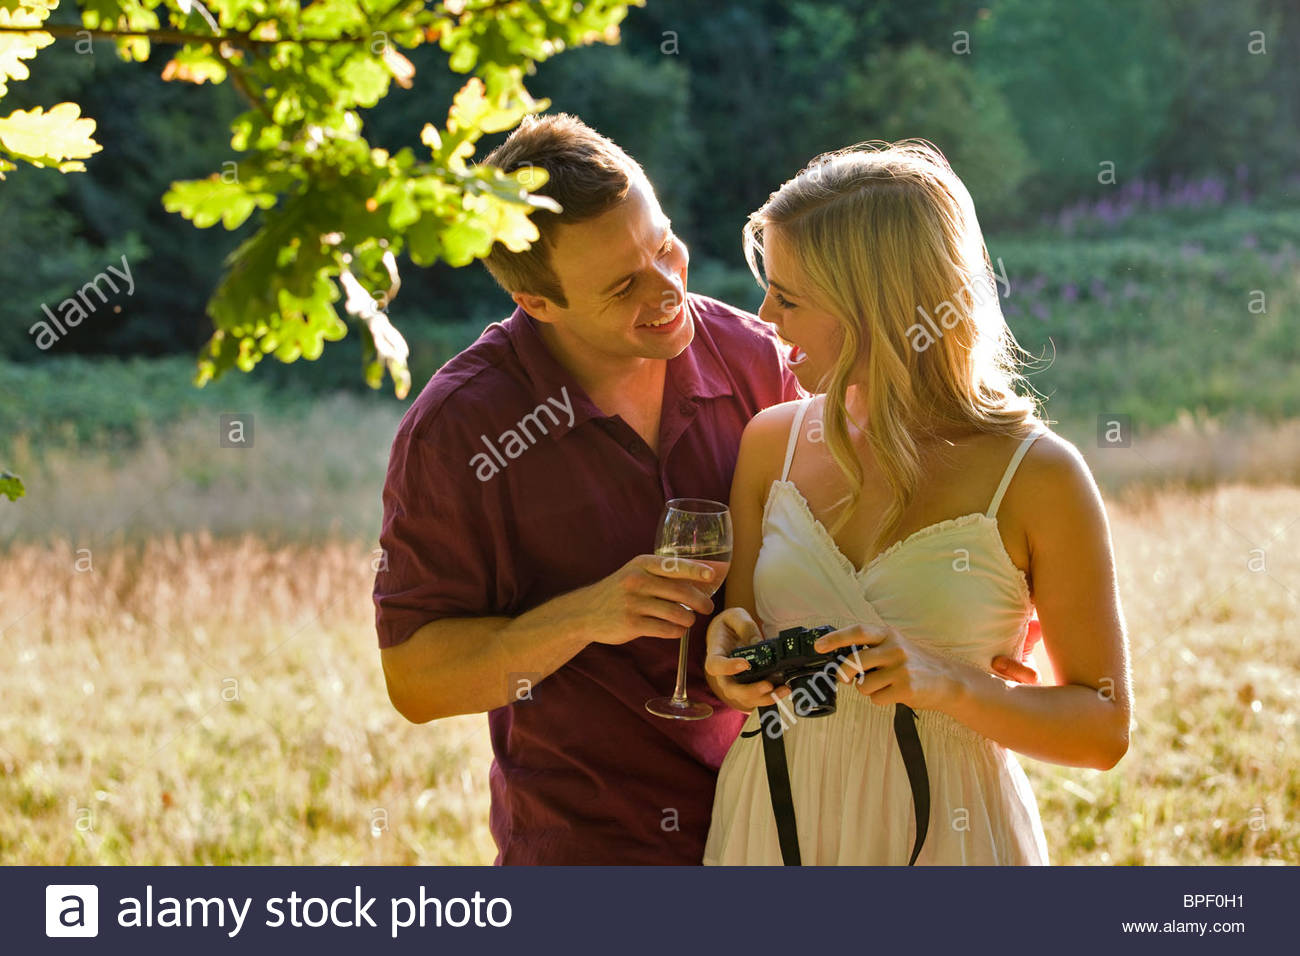 A young couple looking at photographs on their camera - Stock Image